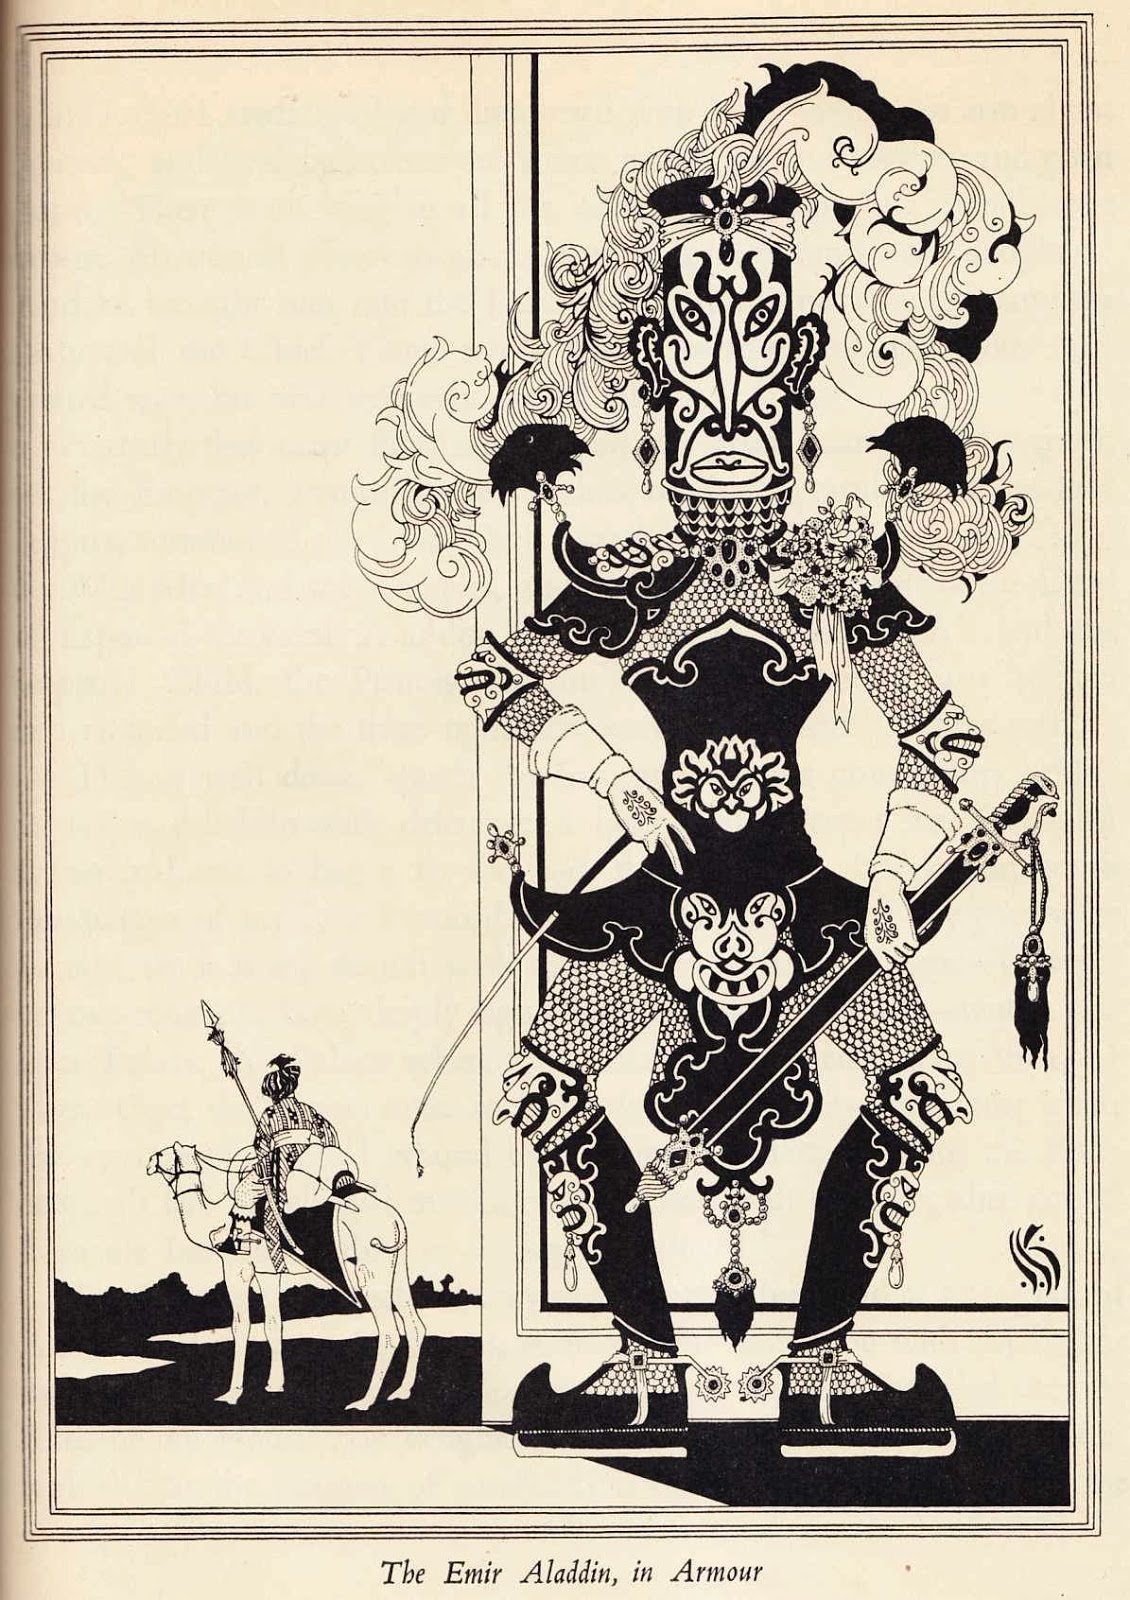 """John Kettelwell - The Emir Aladdin, in Armour - Illustration from """"The Story of Aladdin and the Wonderful Lamp,"""" 1928"""